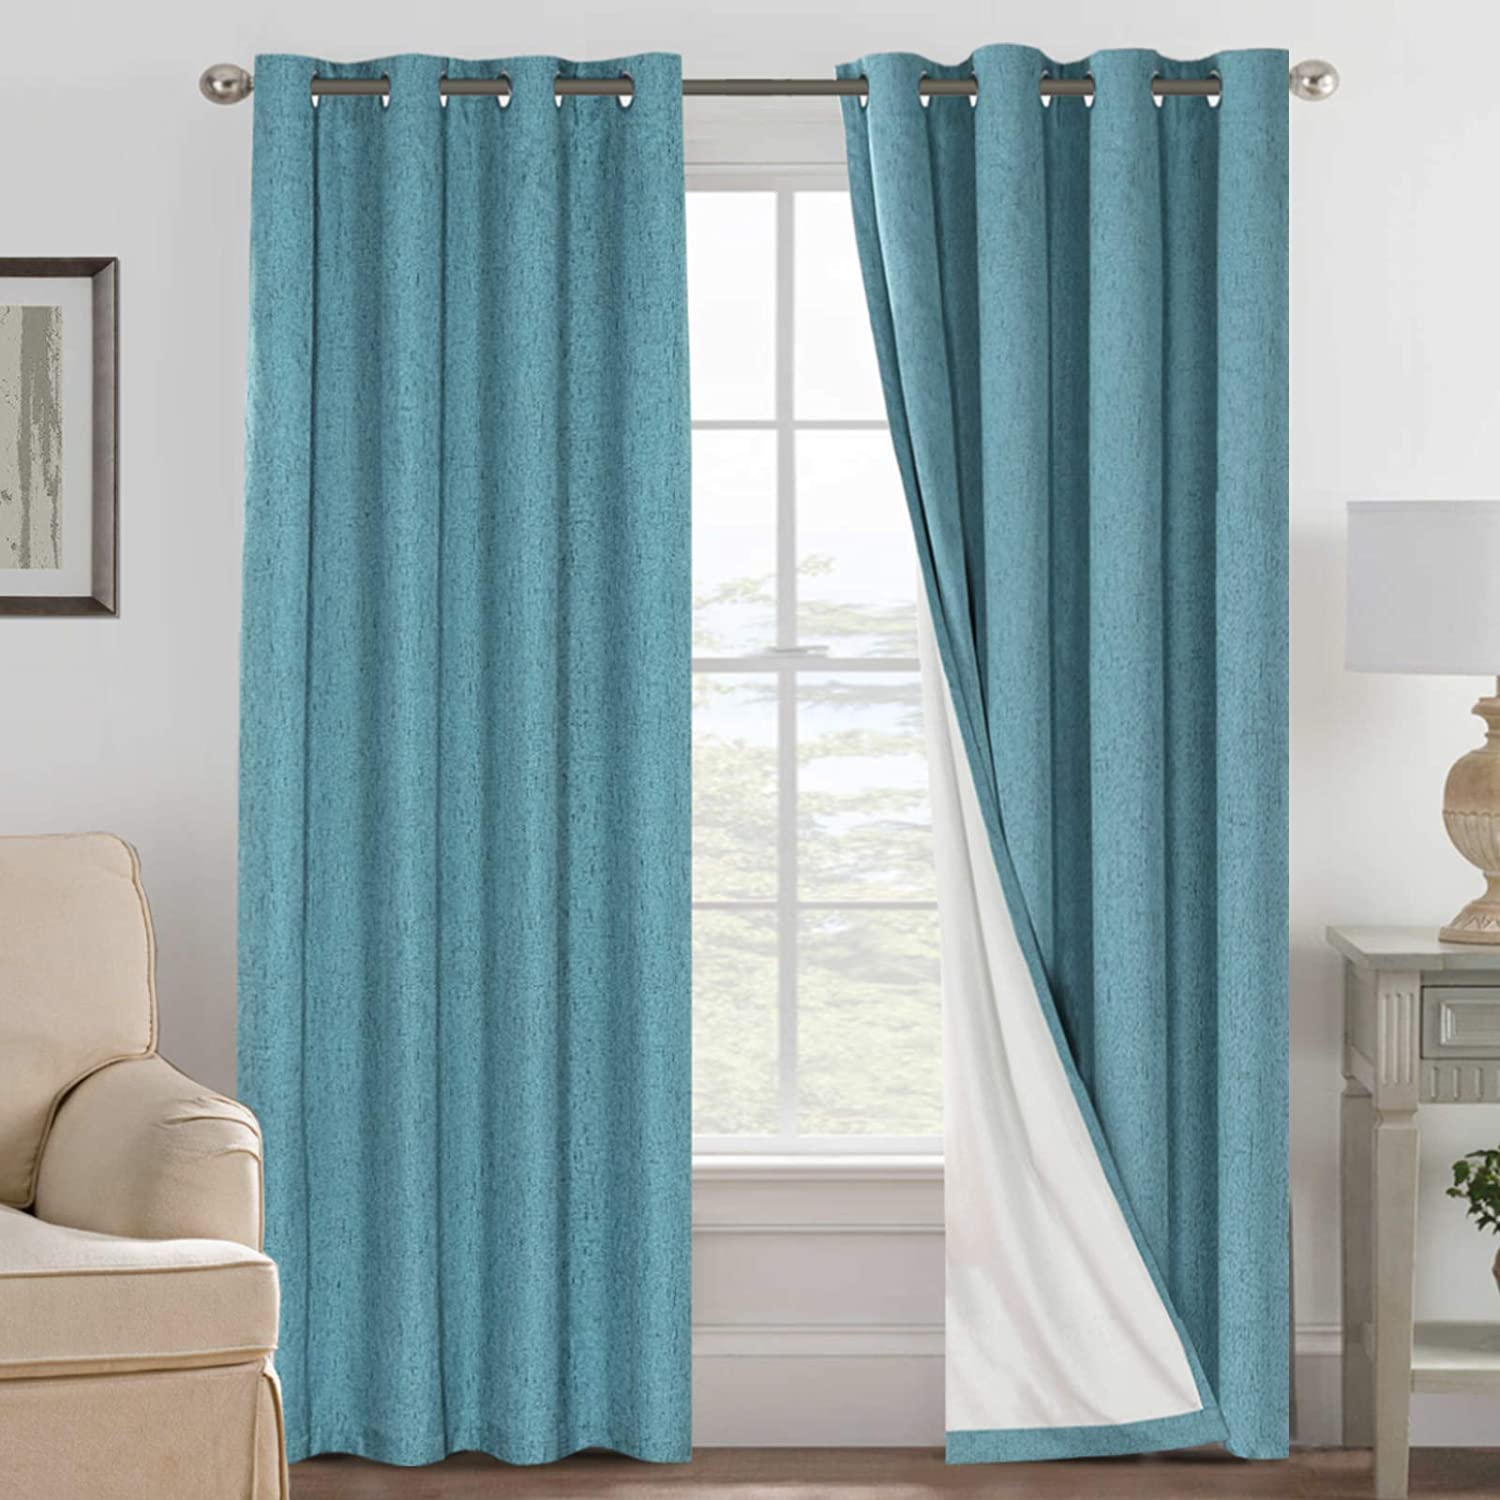 Linen Limited time sale Blackout Curtains supreme 84 Absolutely Inches 100% Long